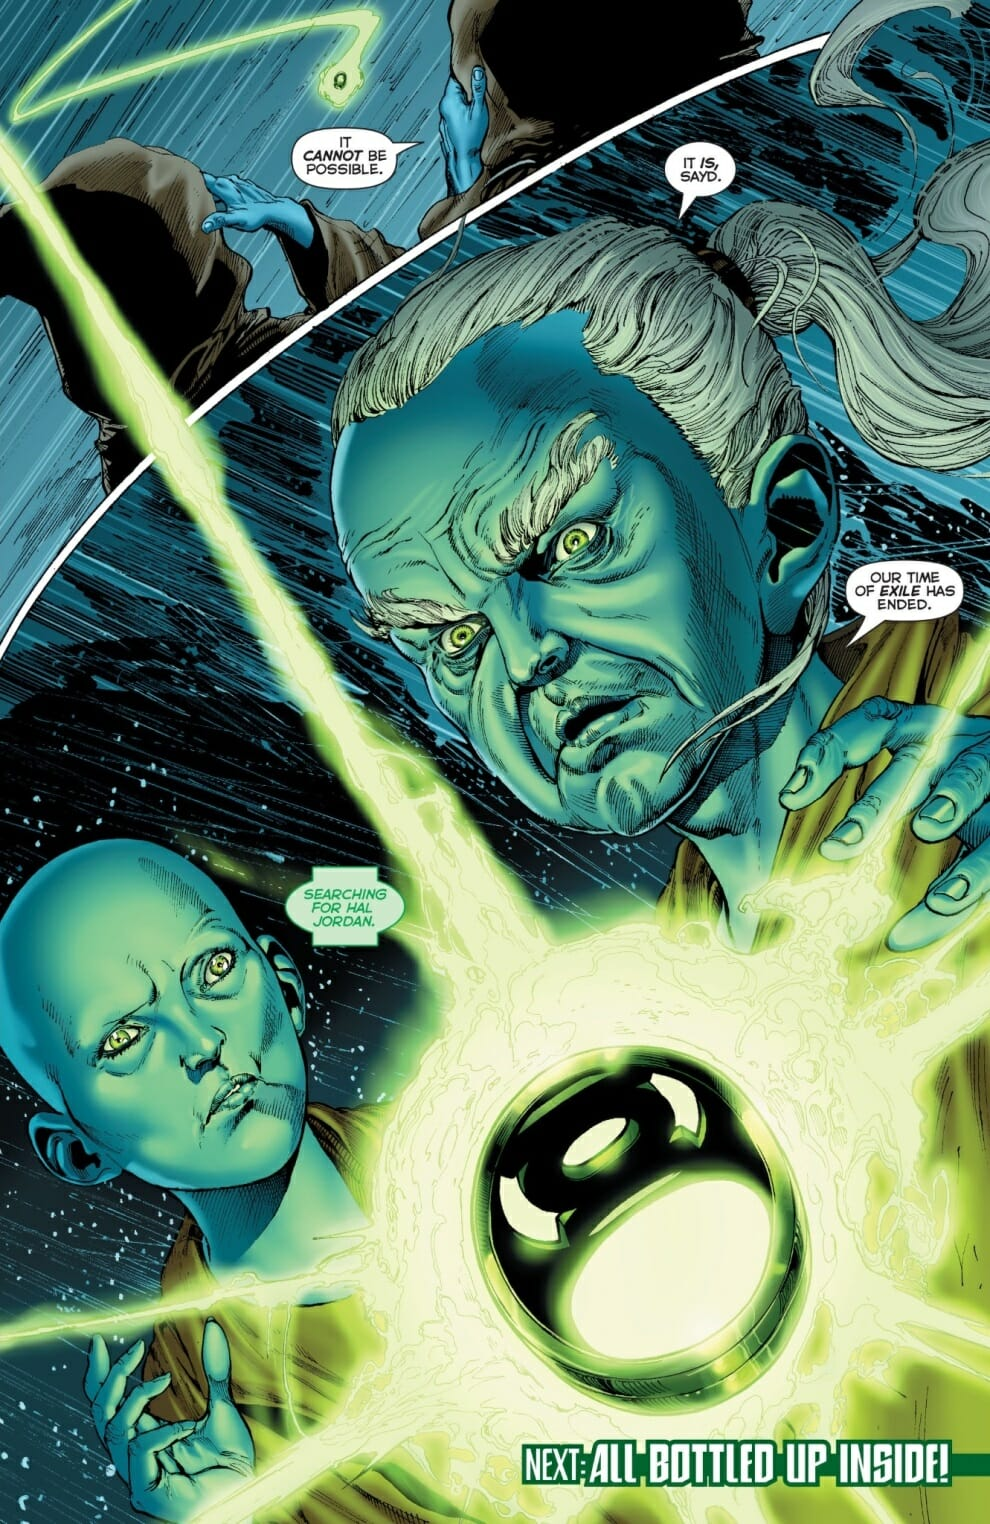 The Green Woman The Empress From The Wildwood Tarot: Hal Jordan And The Green Lantern Corps #8 Review